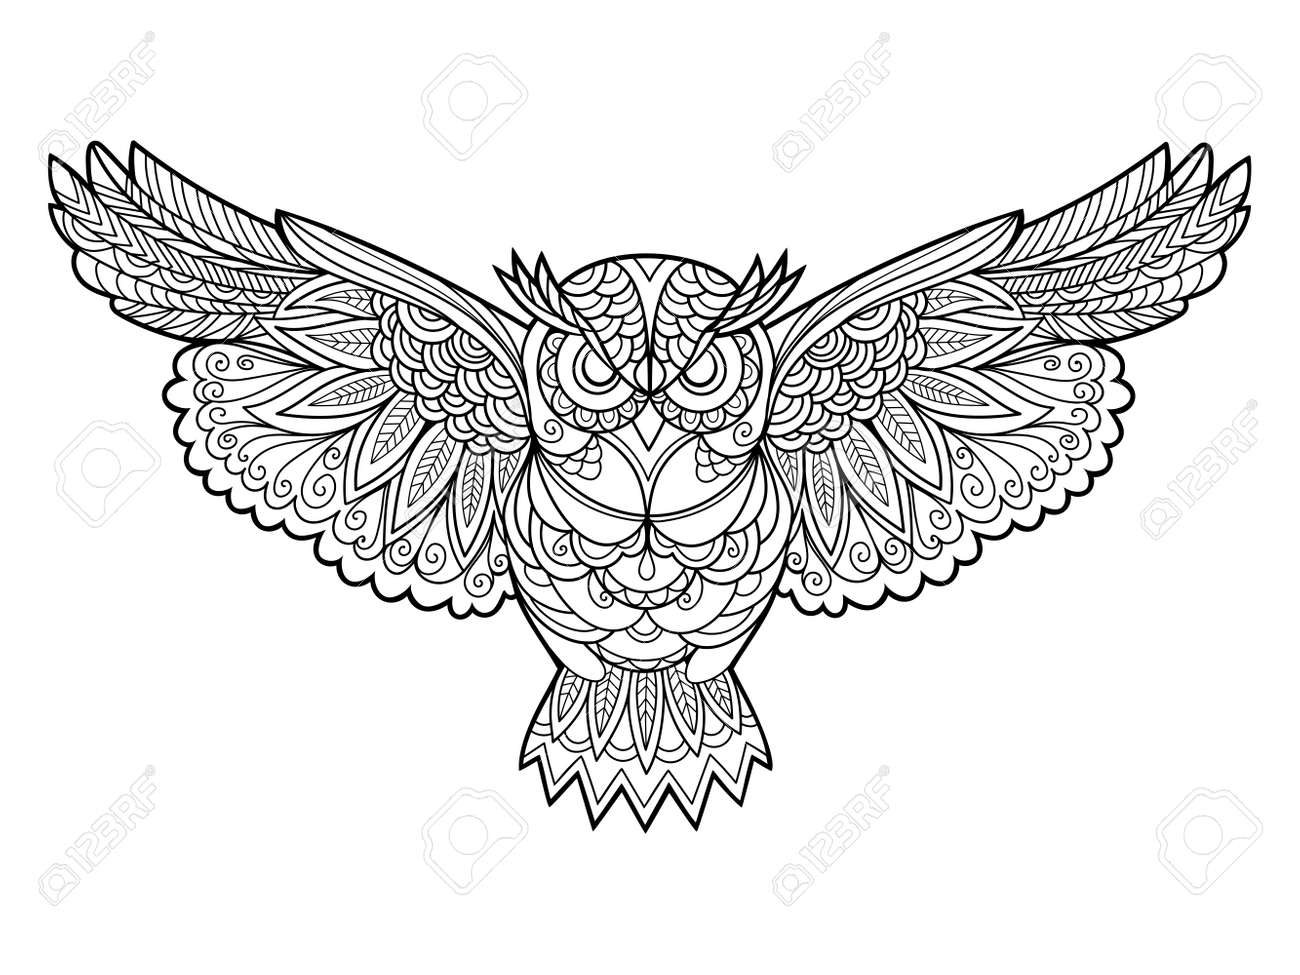 Anti stress coloring images - Owl Bird Coloring Book For Adults Vector Illustration Anti Stress Coloring For Adult